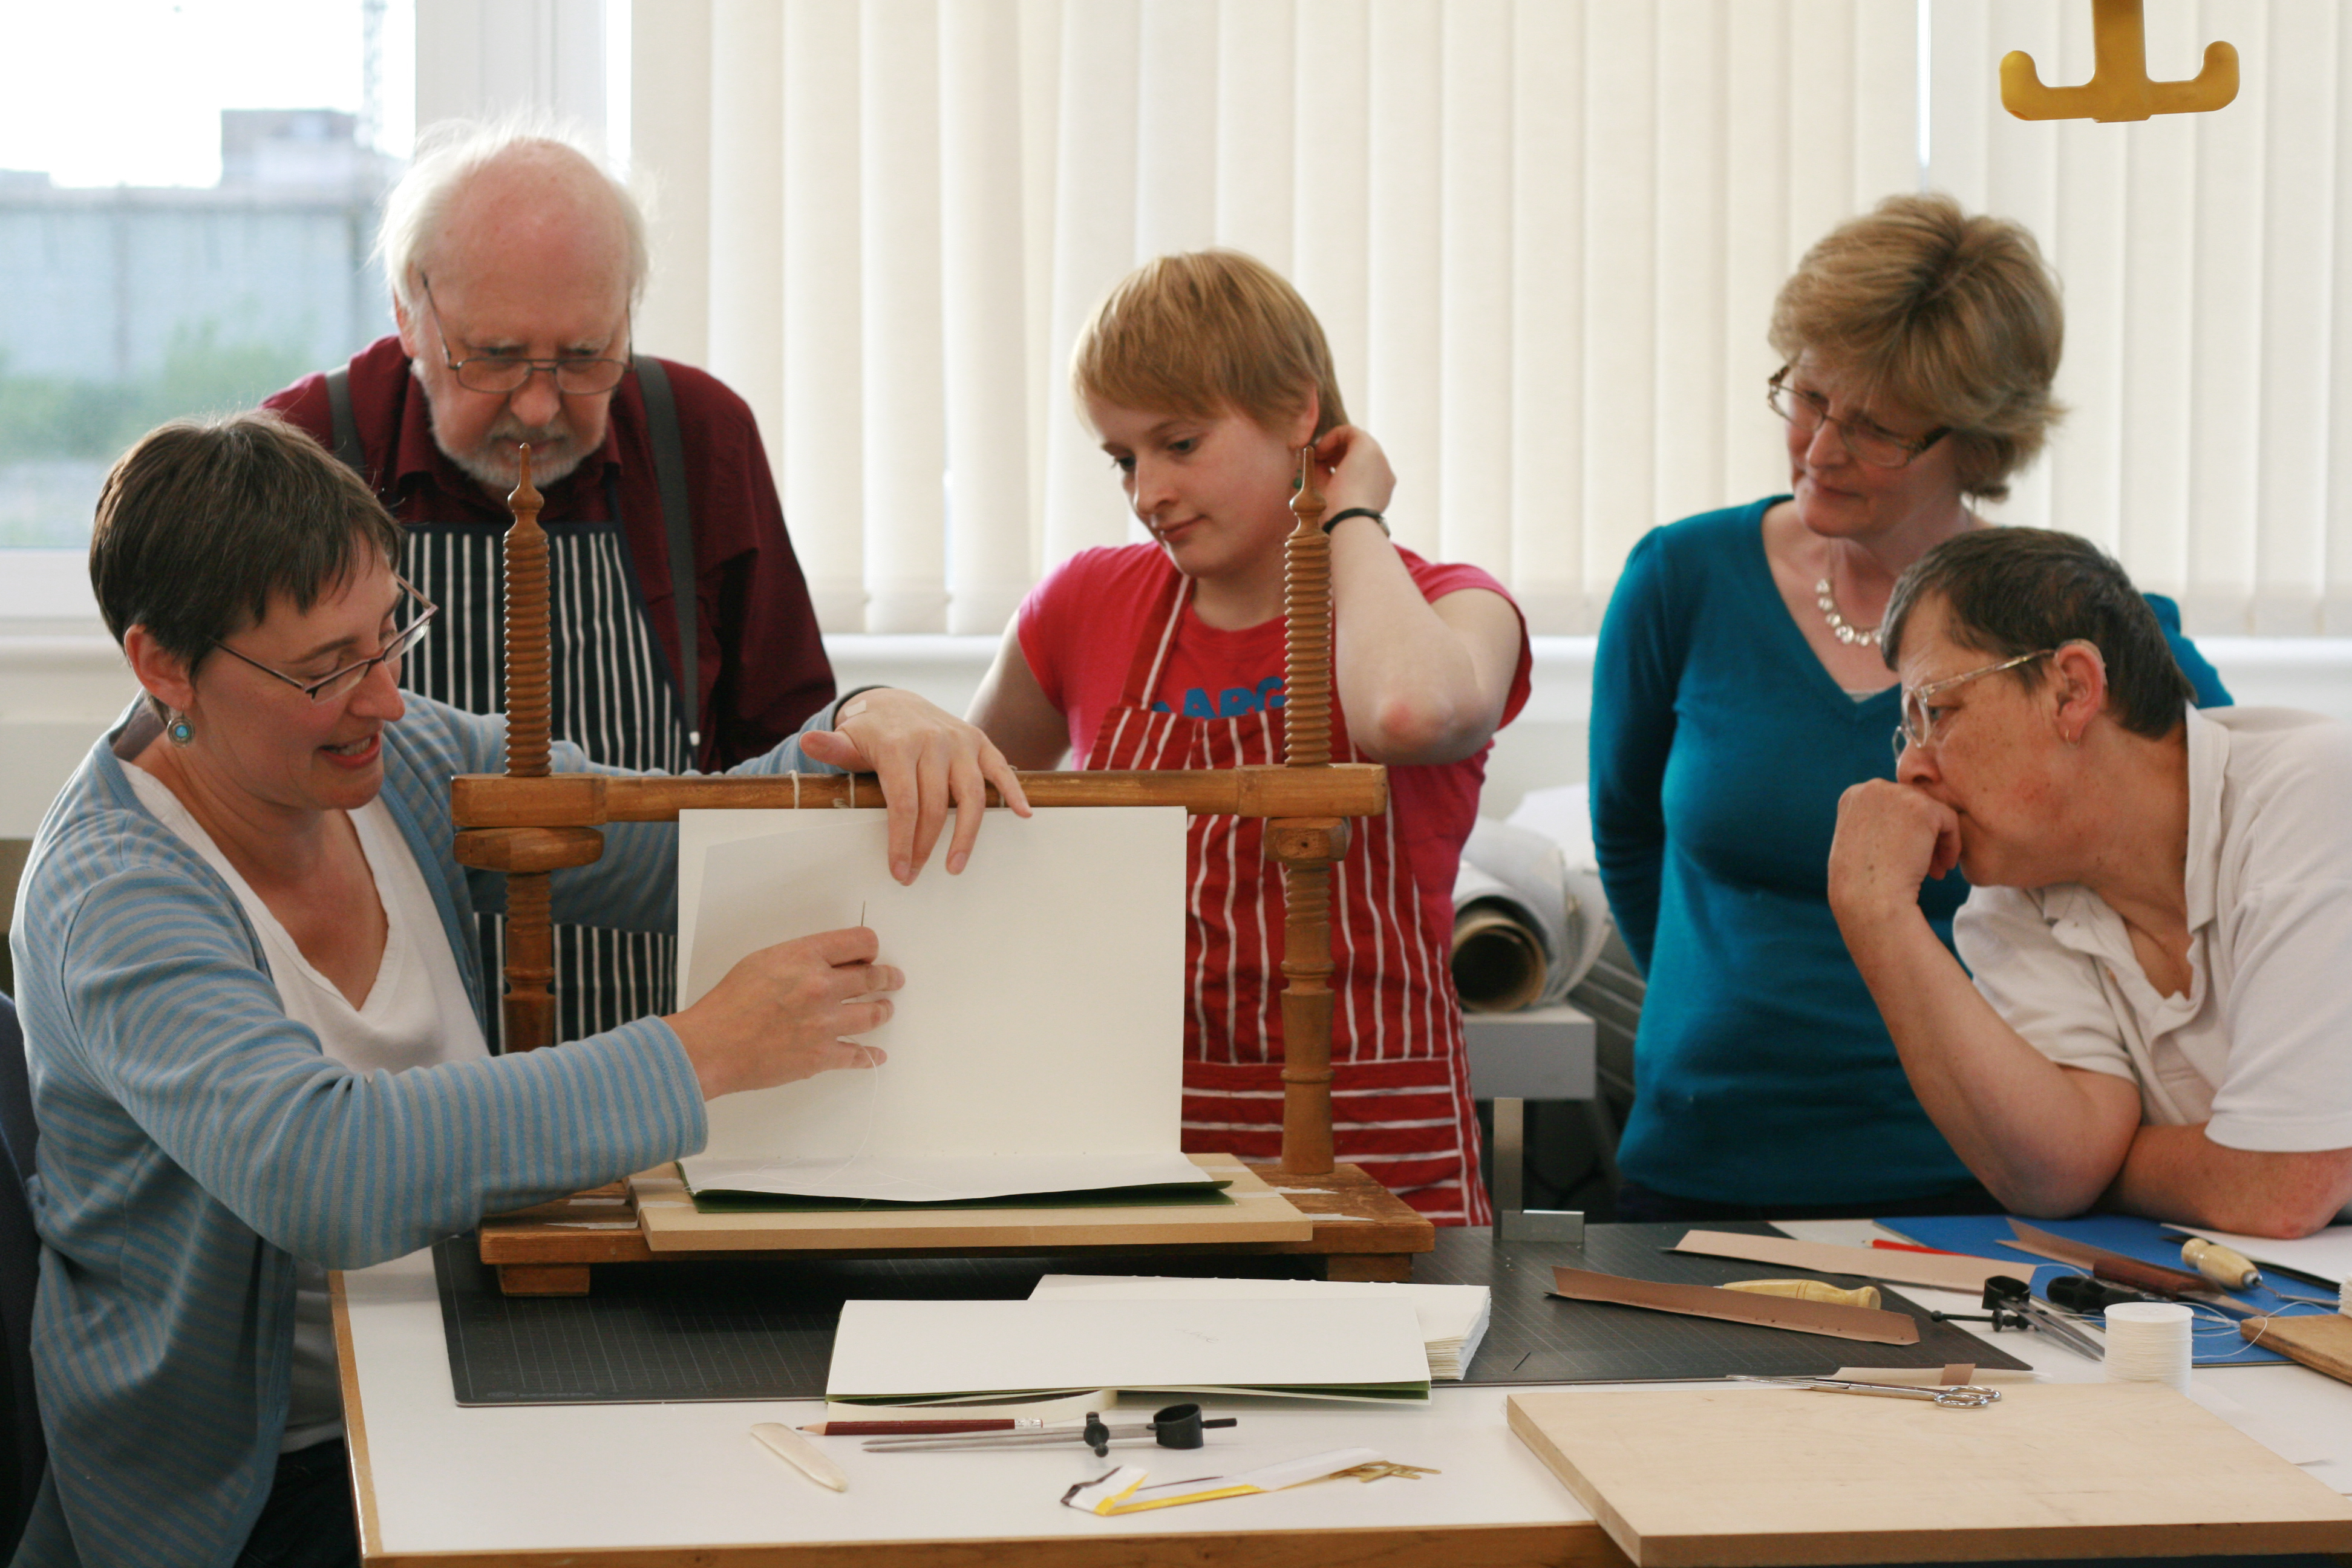 Participants at a bookbinding class